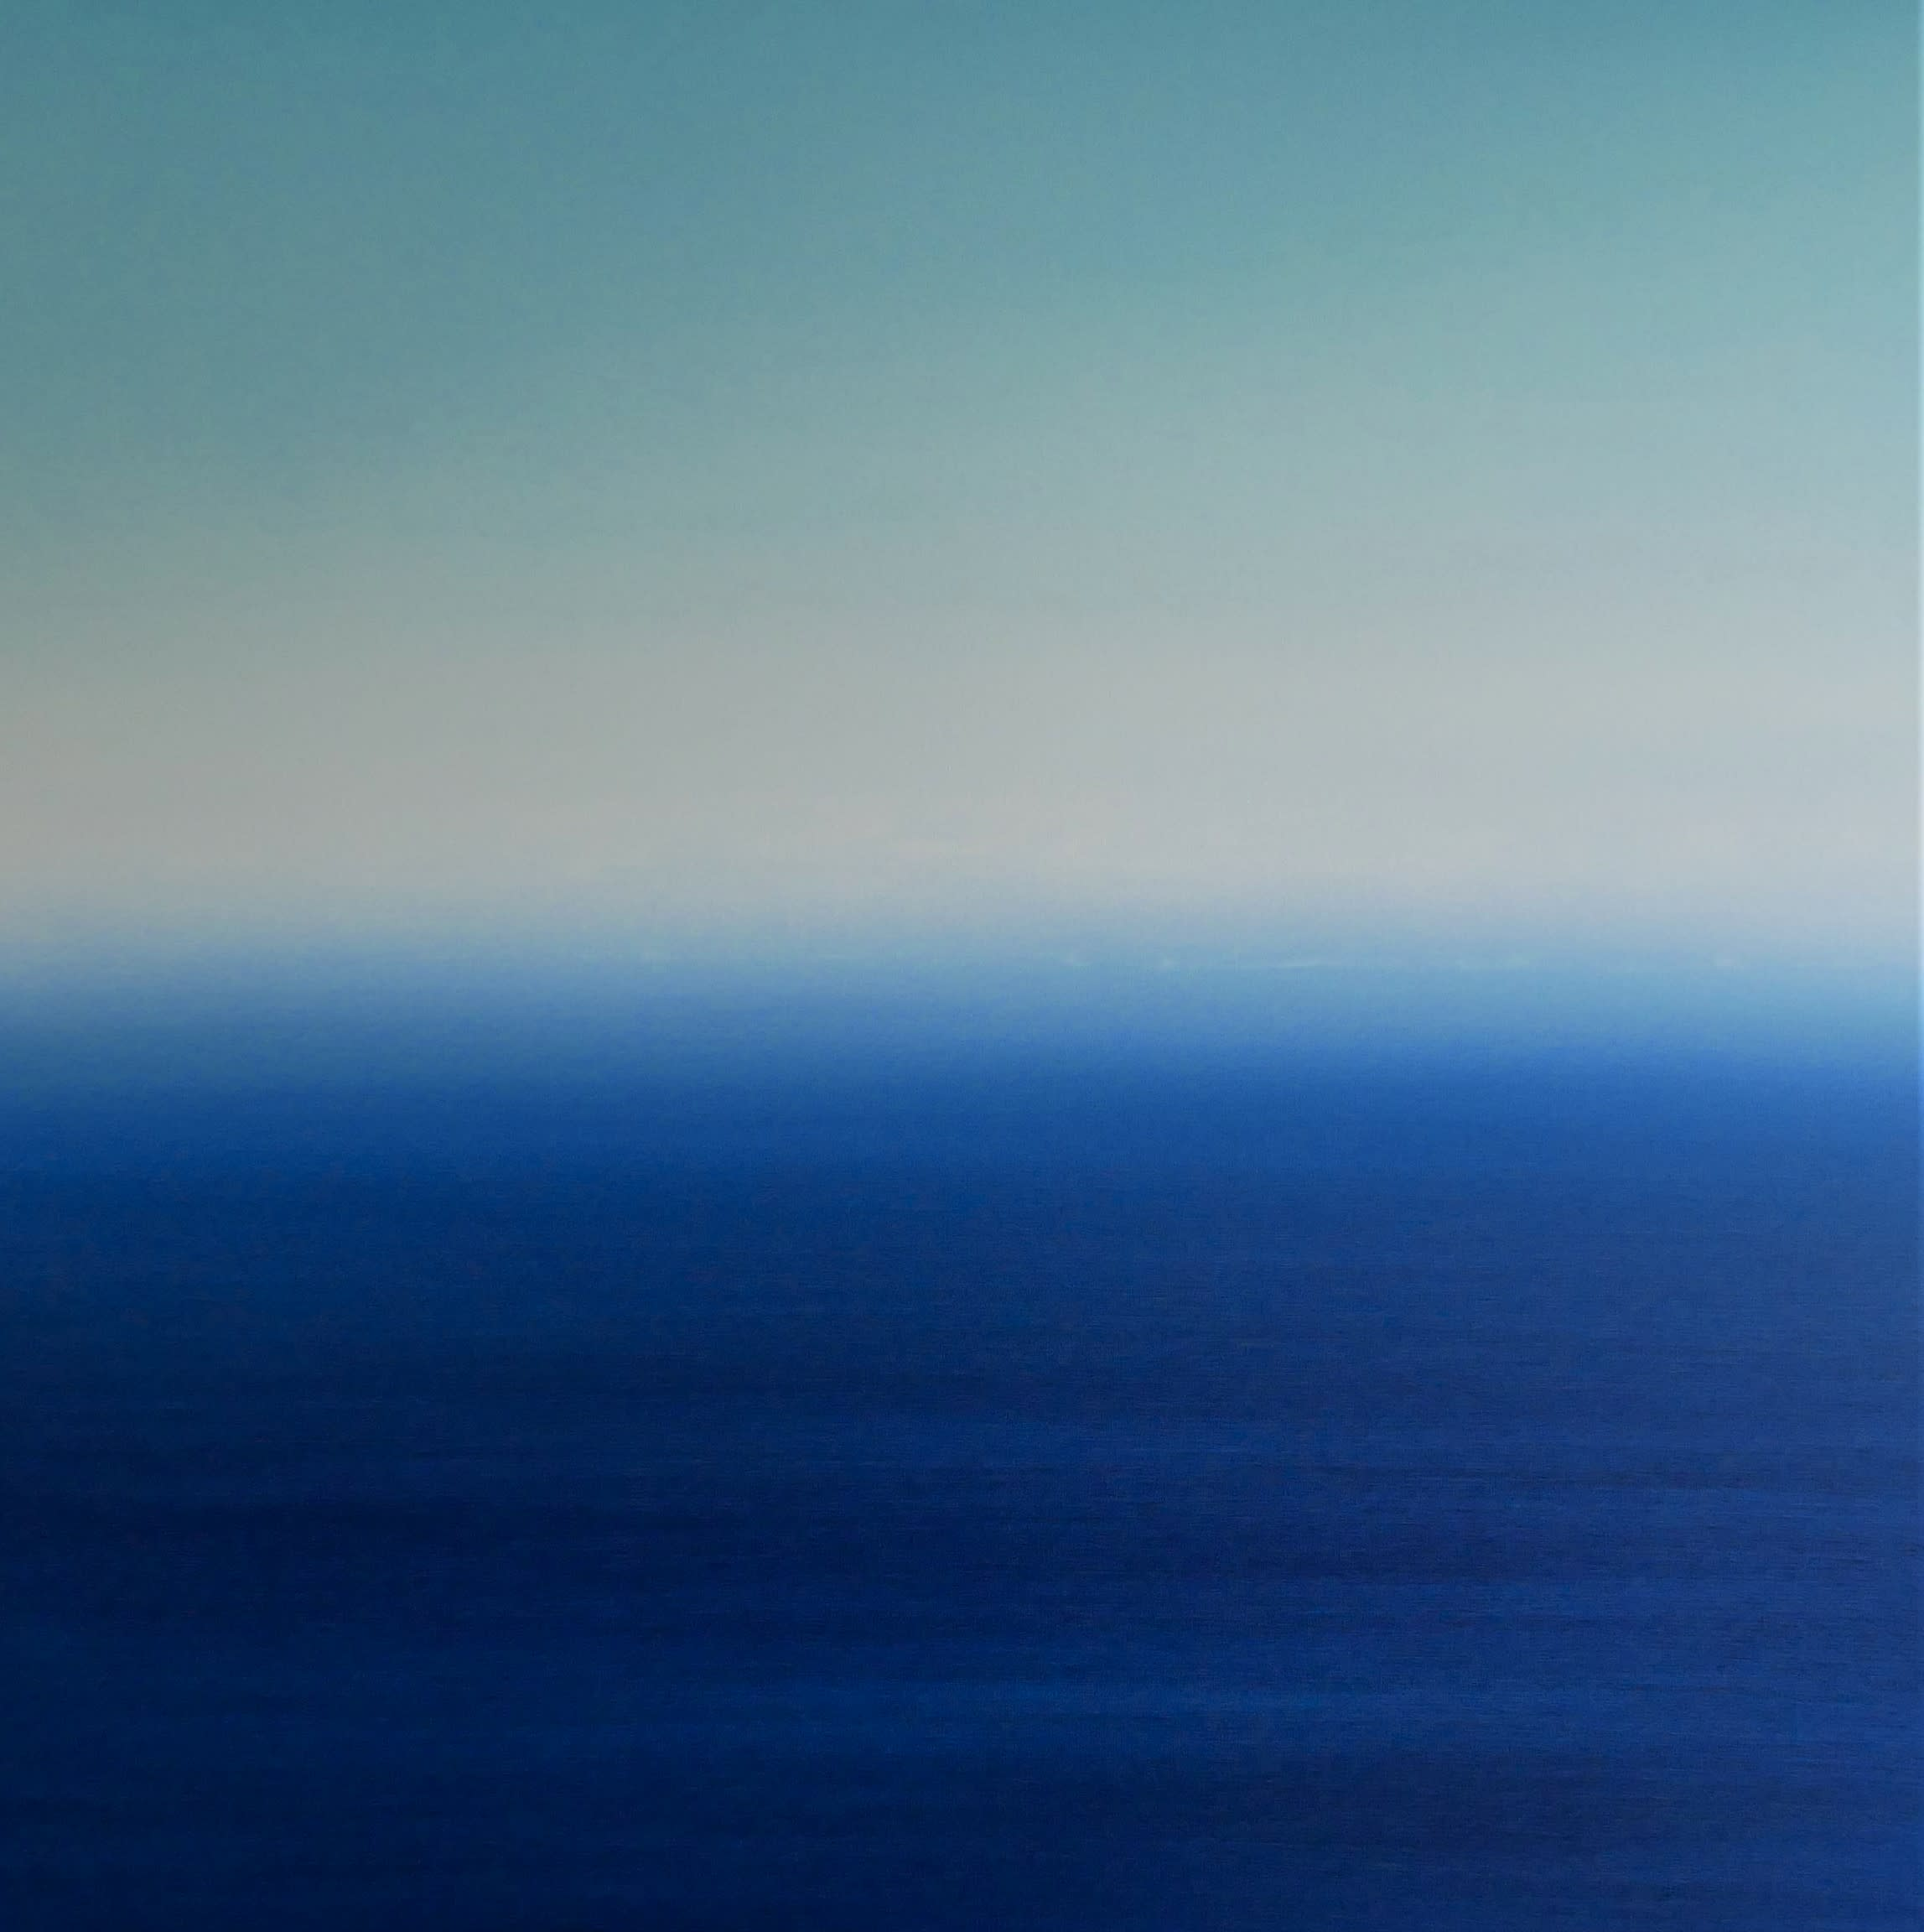 "<span class=""link fancybox-details-link""><a href=""/artists/78-martyn-perryman/works/6809-martyn-perryman-atlantic-haze-st-ives-4-2019/"">View Detail Page</a></span><div class=""artist""><strong>Martyn Perryman</strong></div> <div class=""title""><em>Atlantic Haze St Ives 4</em>, 2019</div> <div class=""medium"">Oil on canvas</div> <div class=""dimensions"">h. 100 x w. 100 cm</div><div class=""copyright_line"">Own art: £100 x 10 Months, 0% APR</div>"